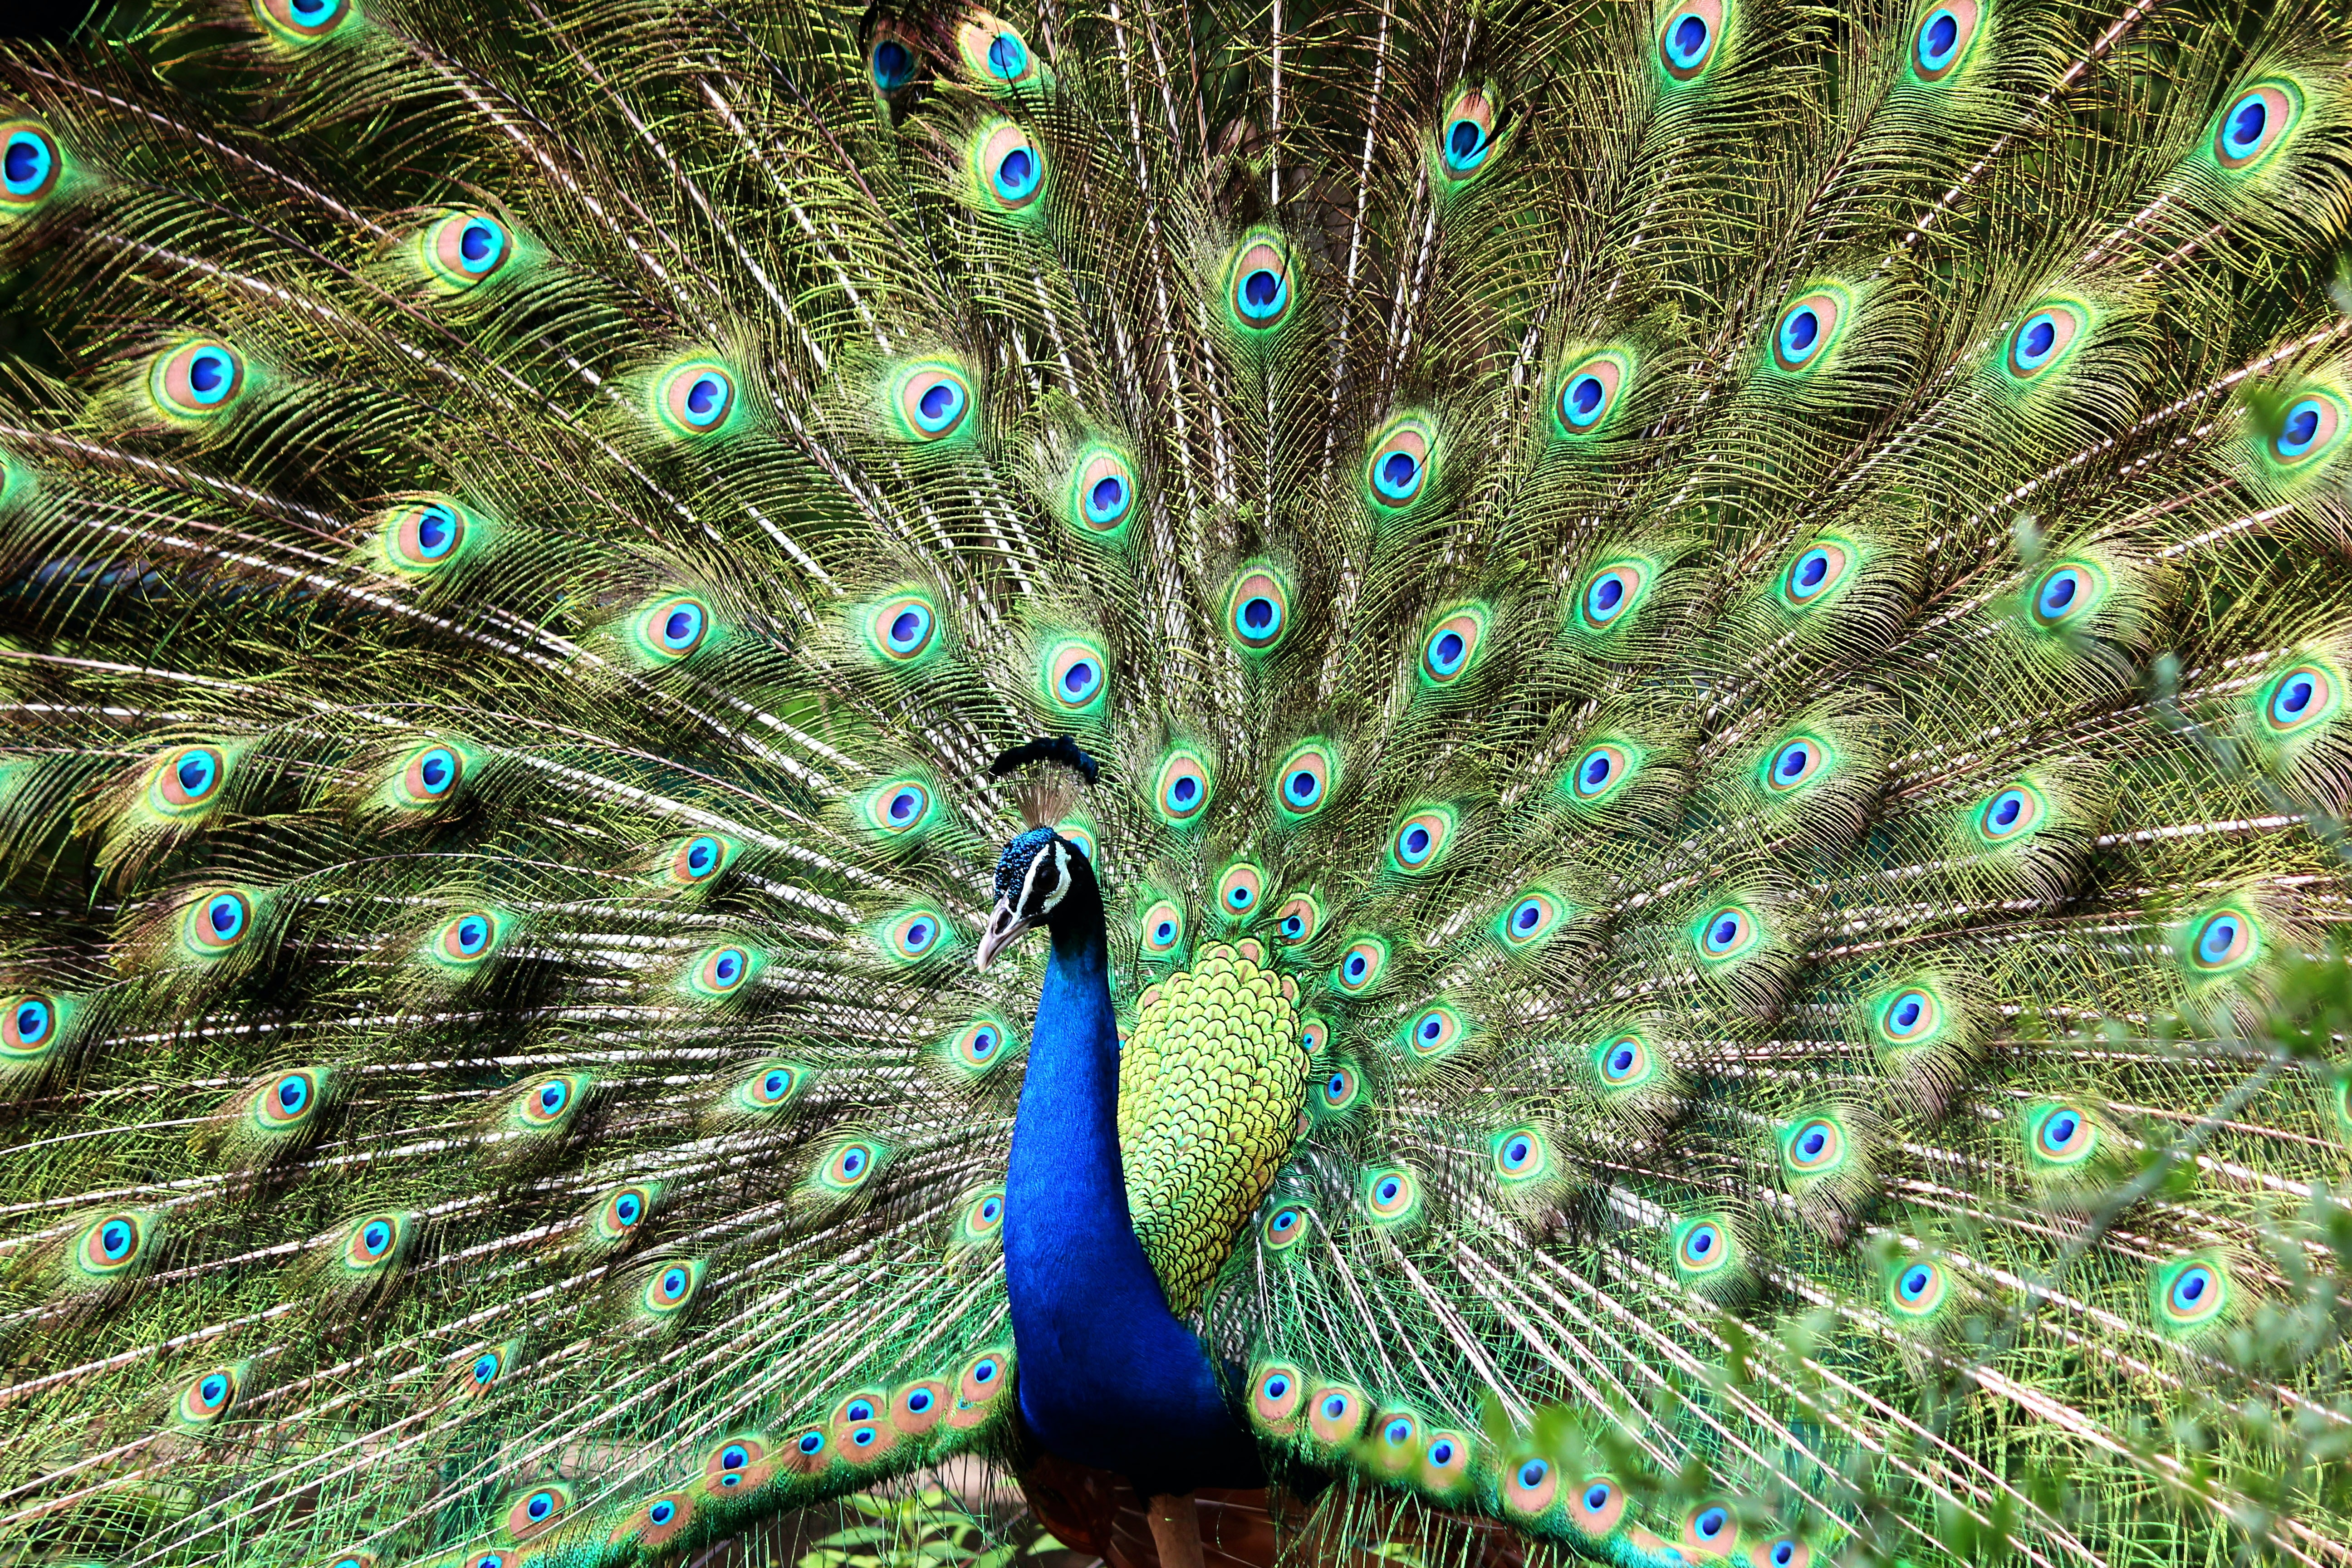 Blue and Green Peacock · Free Stock Photo - photo#34